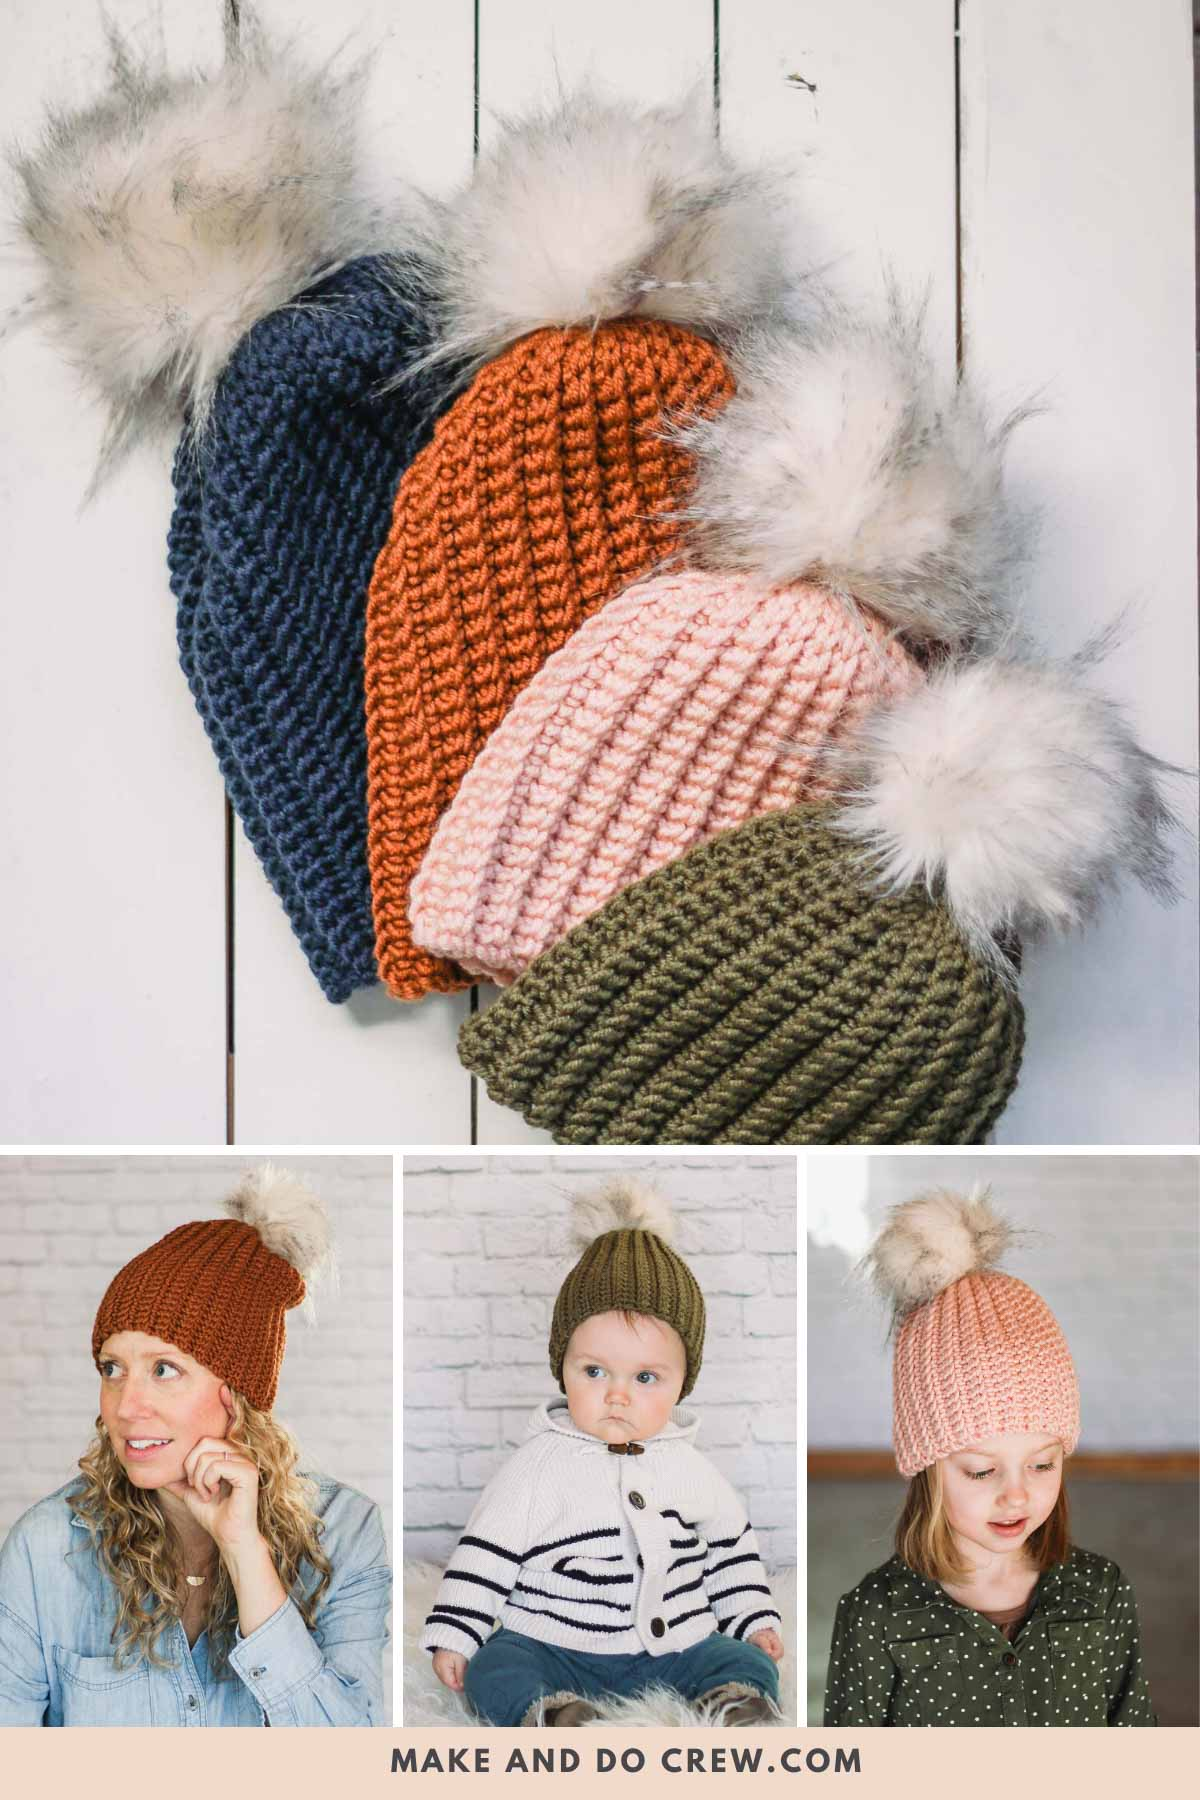 Crochet hats on a woman, child and baby. Made with Lion Brand Color Made Easy yarn.